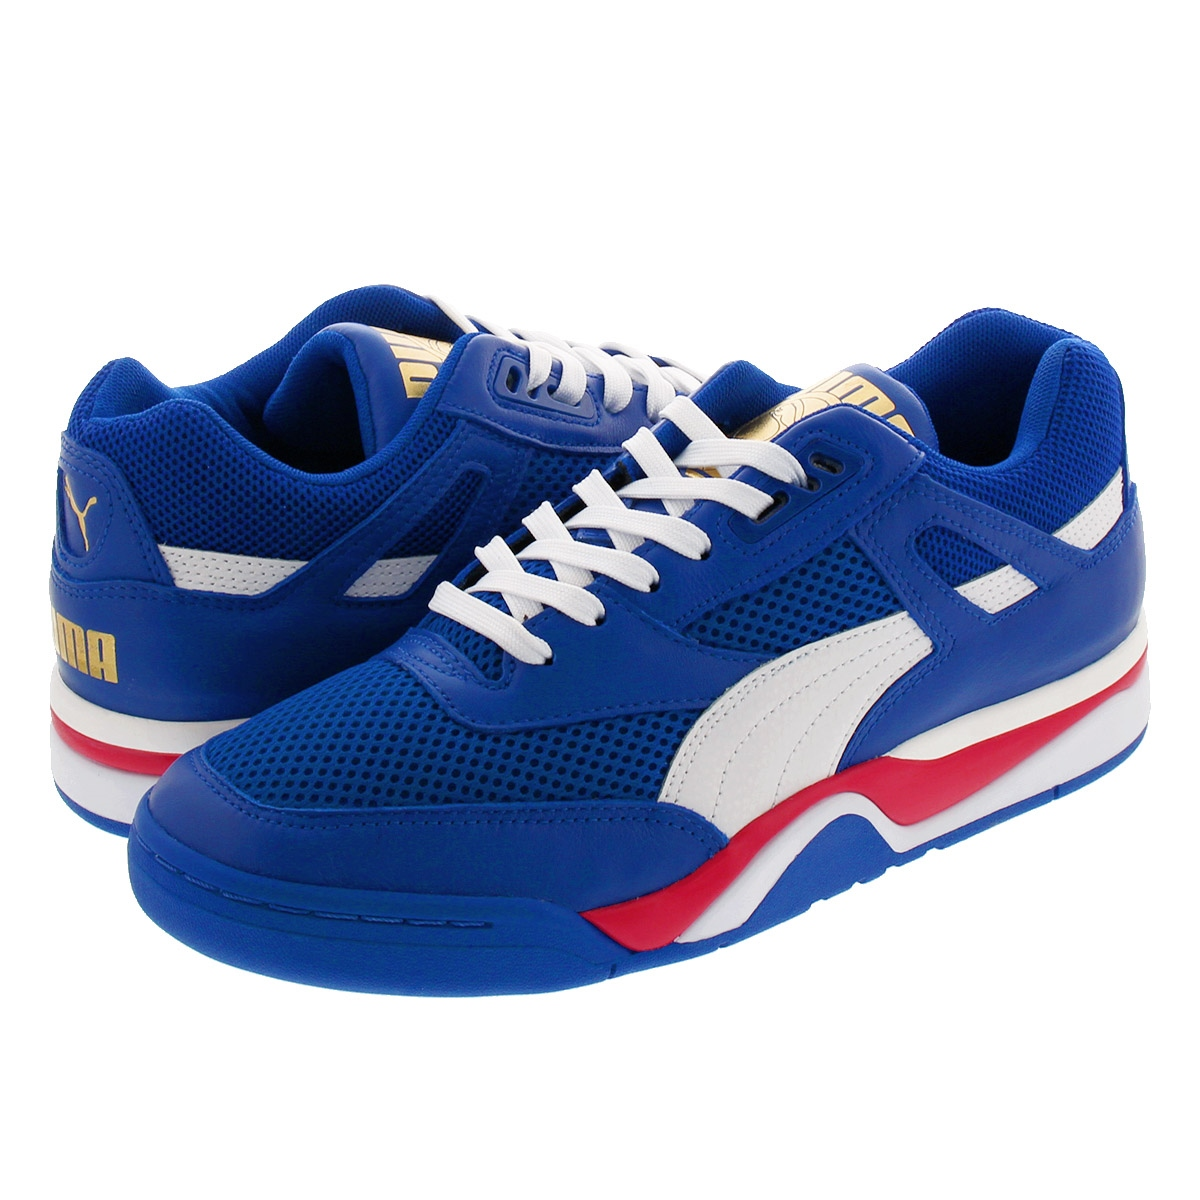 PUMA PALACE GUARD FINALS プーマ パレス ガード ファイナル SURF THE WEB WHITE HIGH RISK RED 370075 01iukXOPZ